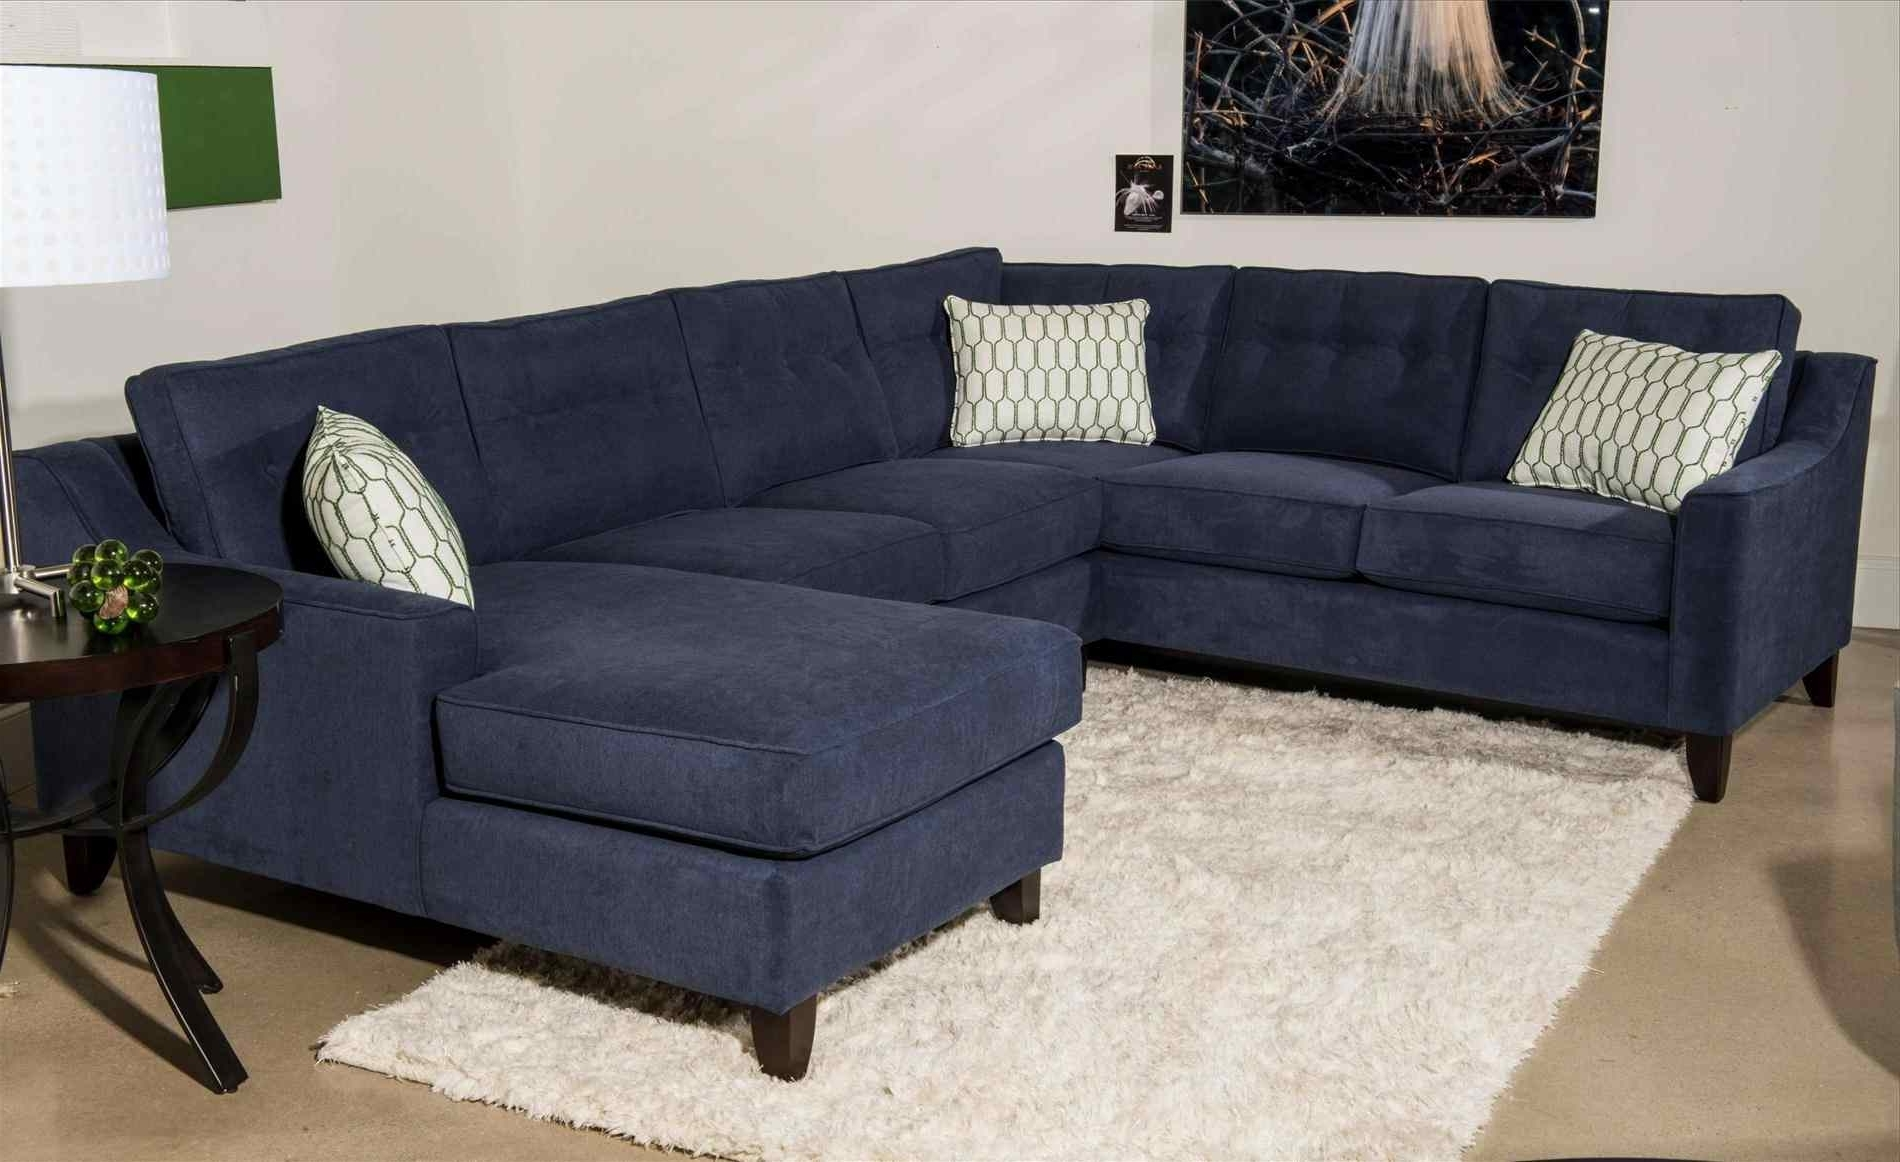 Couch : Clearance Big Lots Sofa Blue Sectional Couch Small Ethan Intended For Latest Big Lots Chaise Lounges (View 8 of 15)